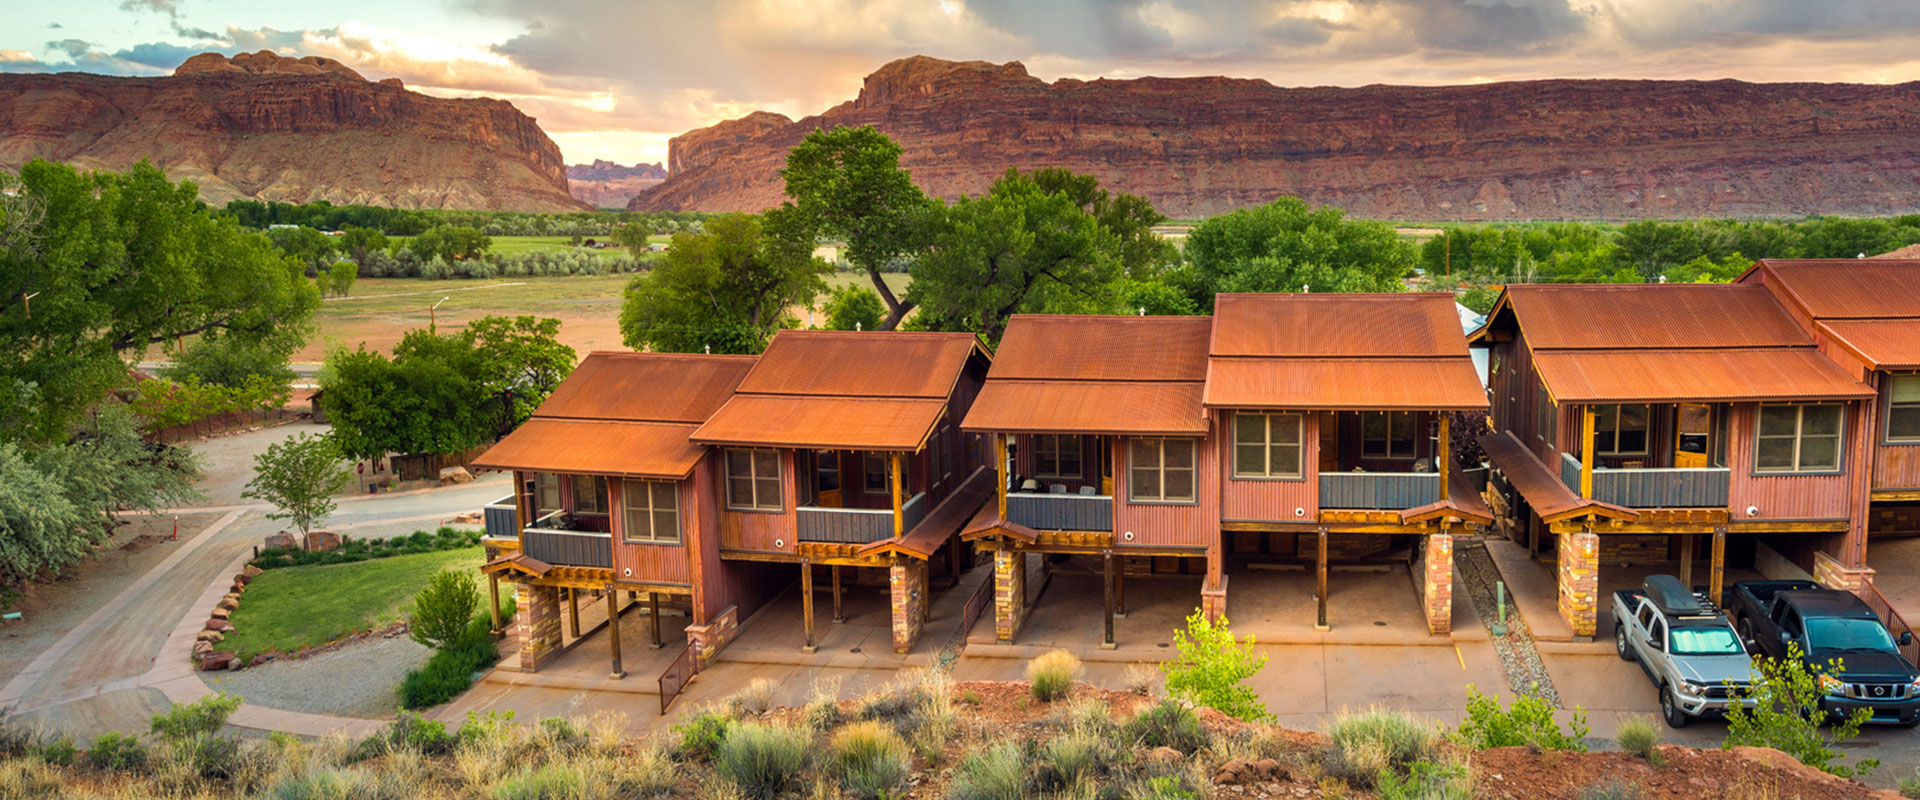 The Moab Springs Ranch sign faces oppposite an empty road, a view of the vast grasslands and towering sandstone mountain cliffs of Moab, Utah.